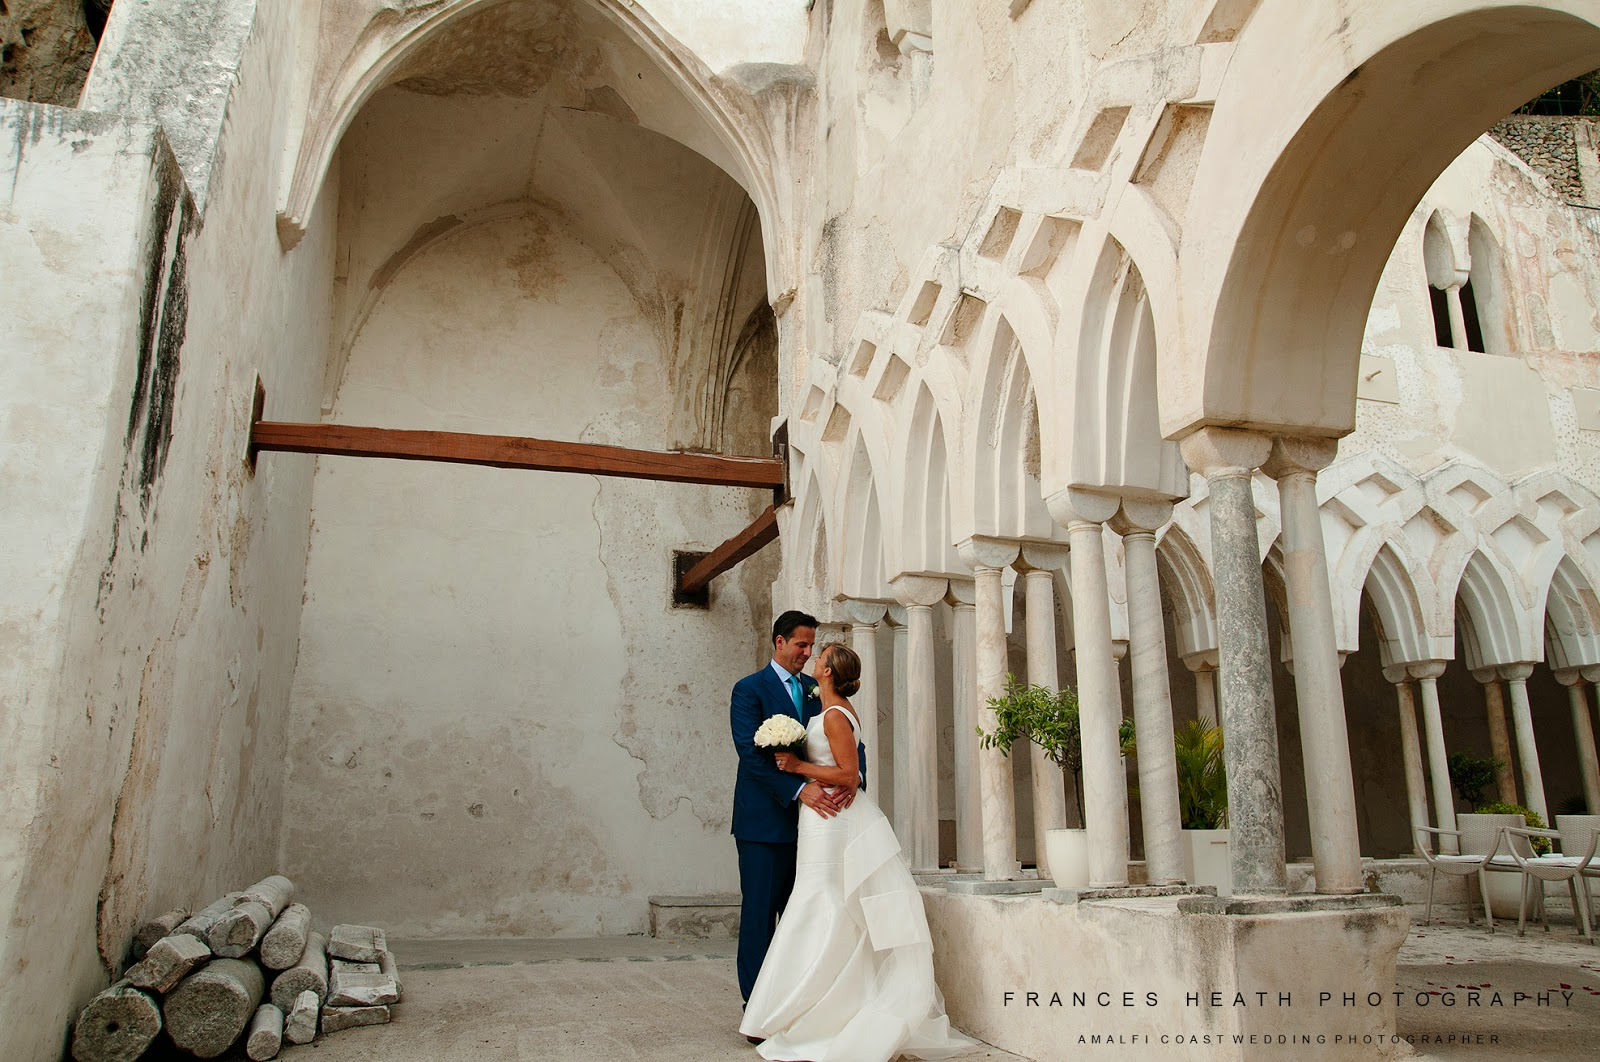 Wedding portrait in the cloisters of the Hotel Convento Amalfi